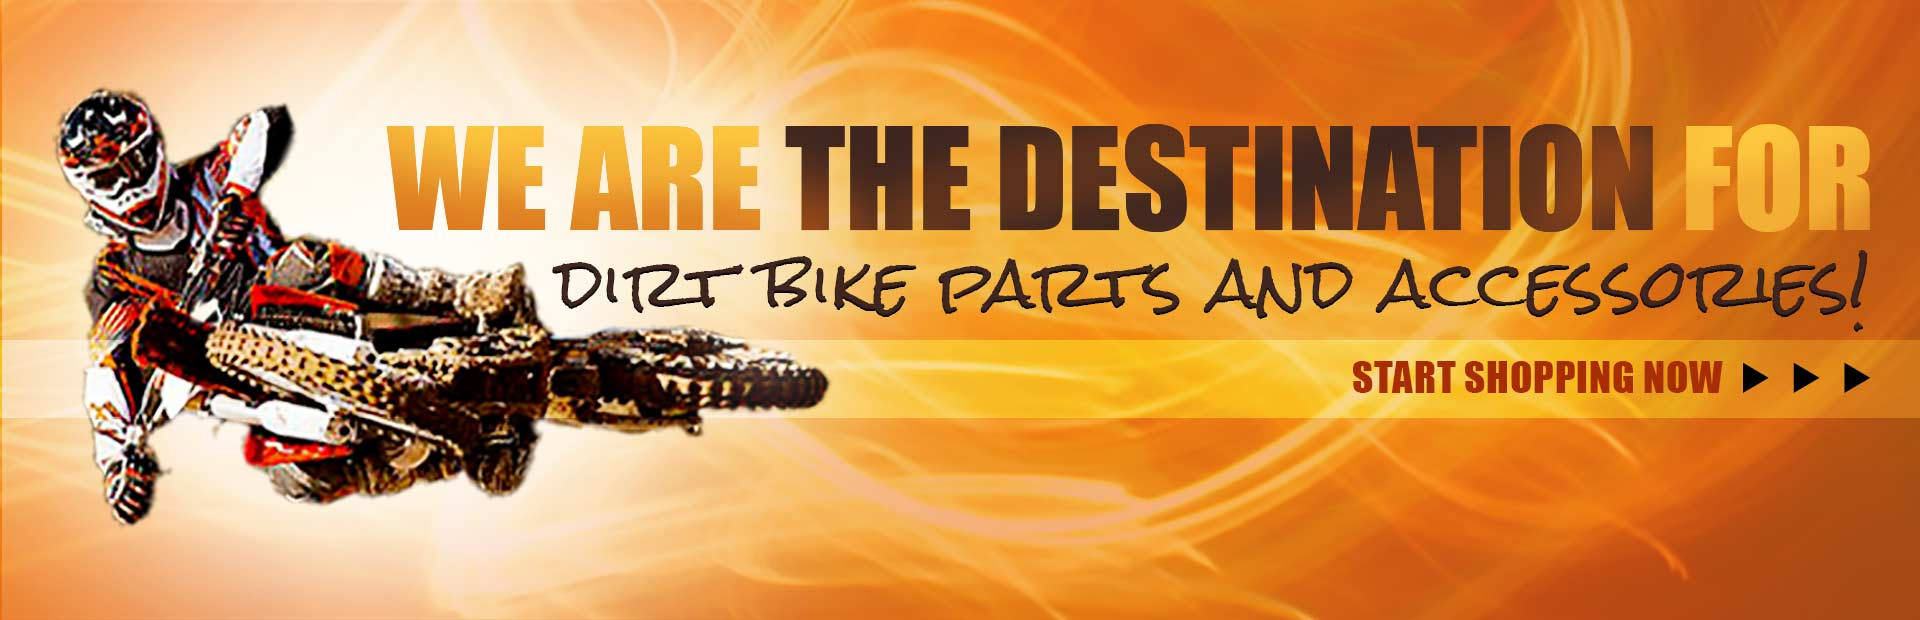 We are the destination for dirt bike parts and accessories! Click here to start shopping now.